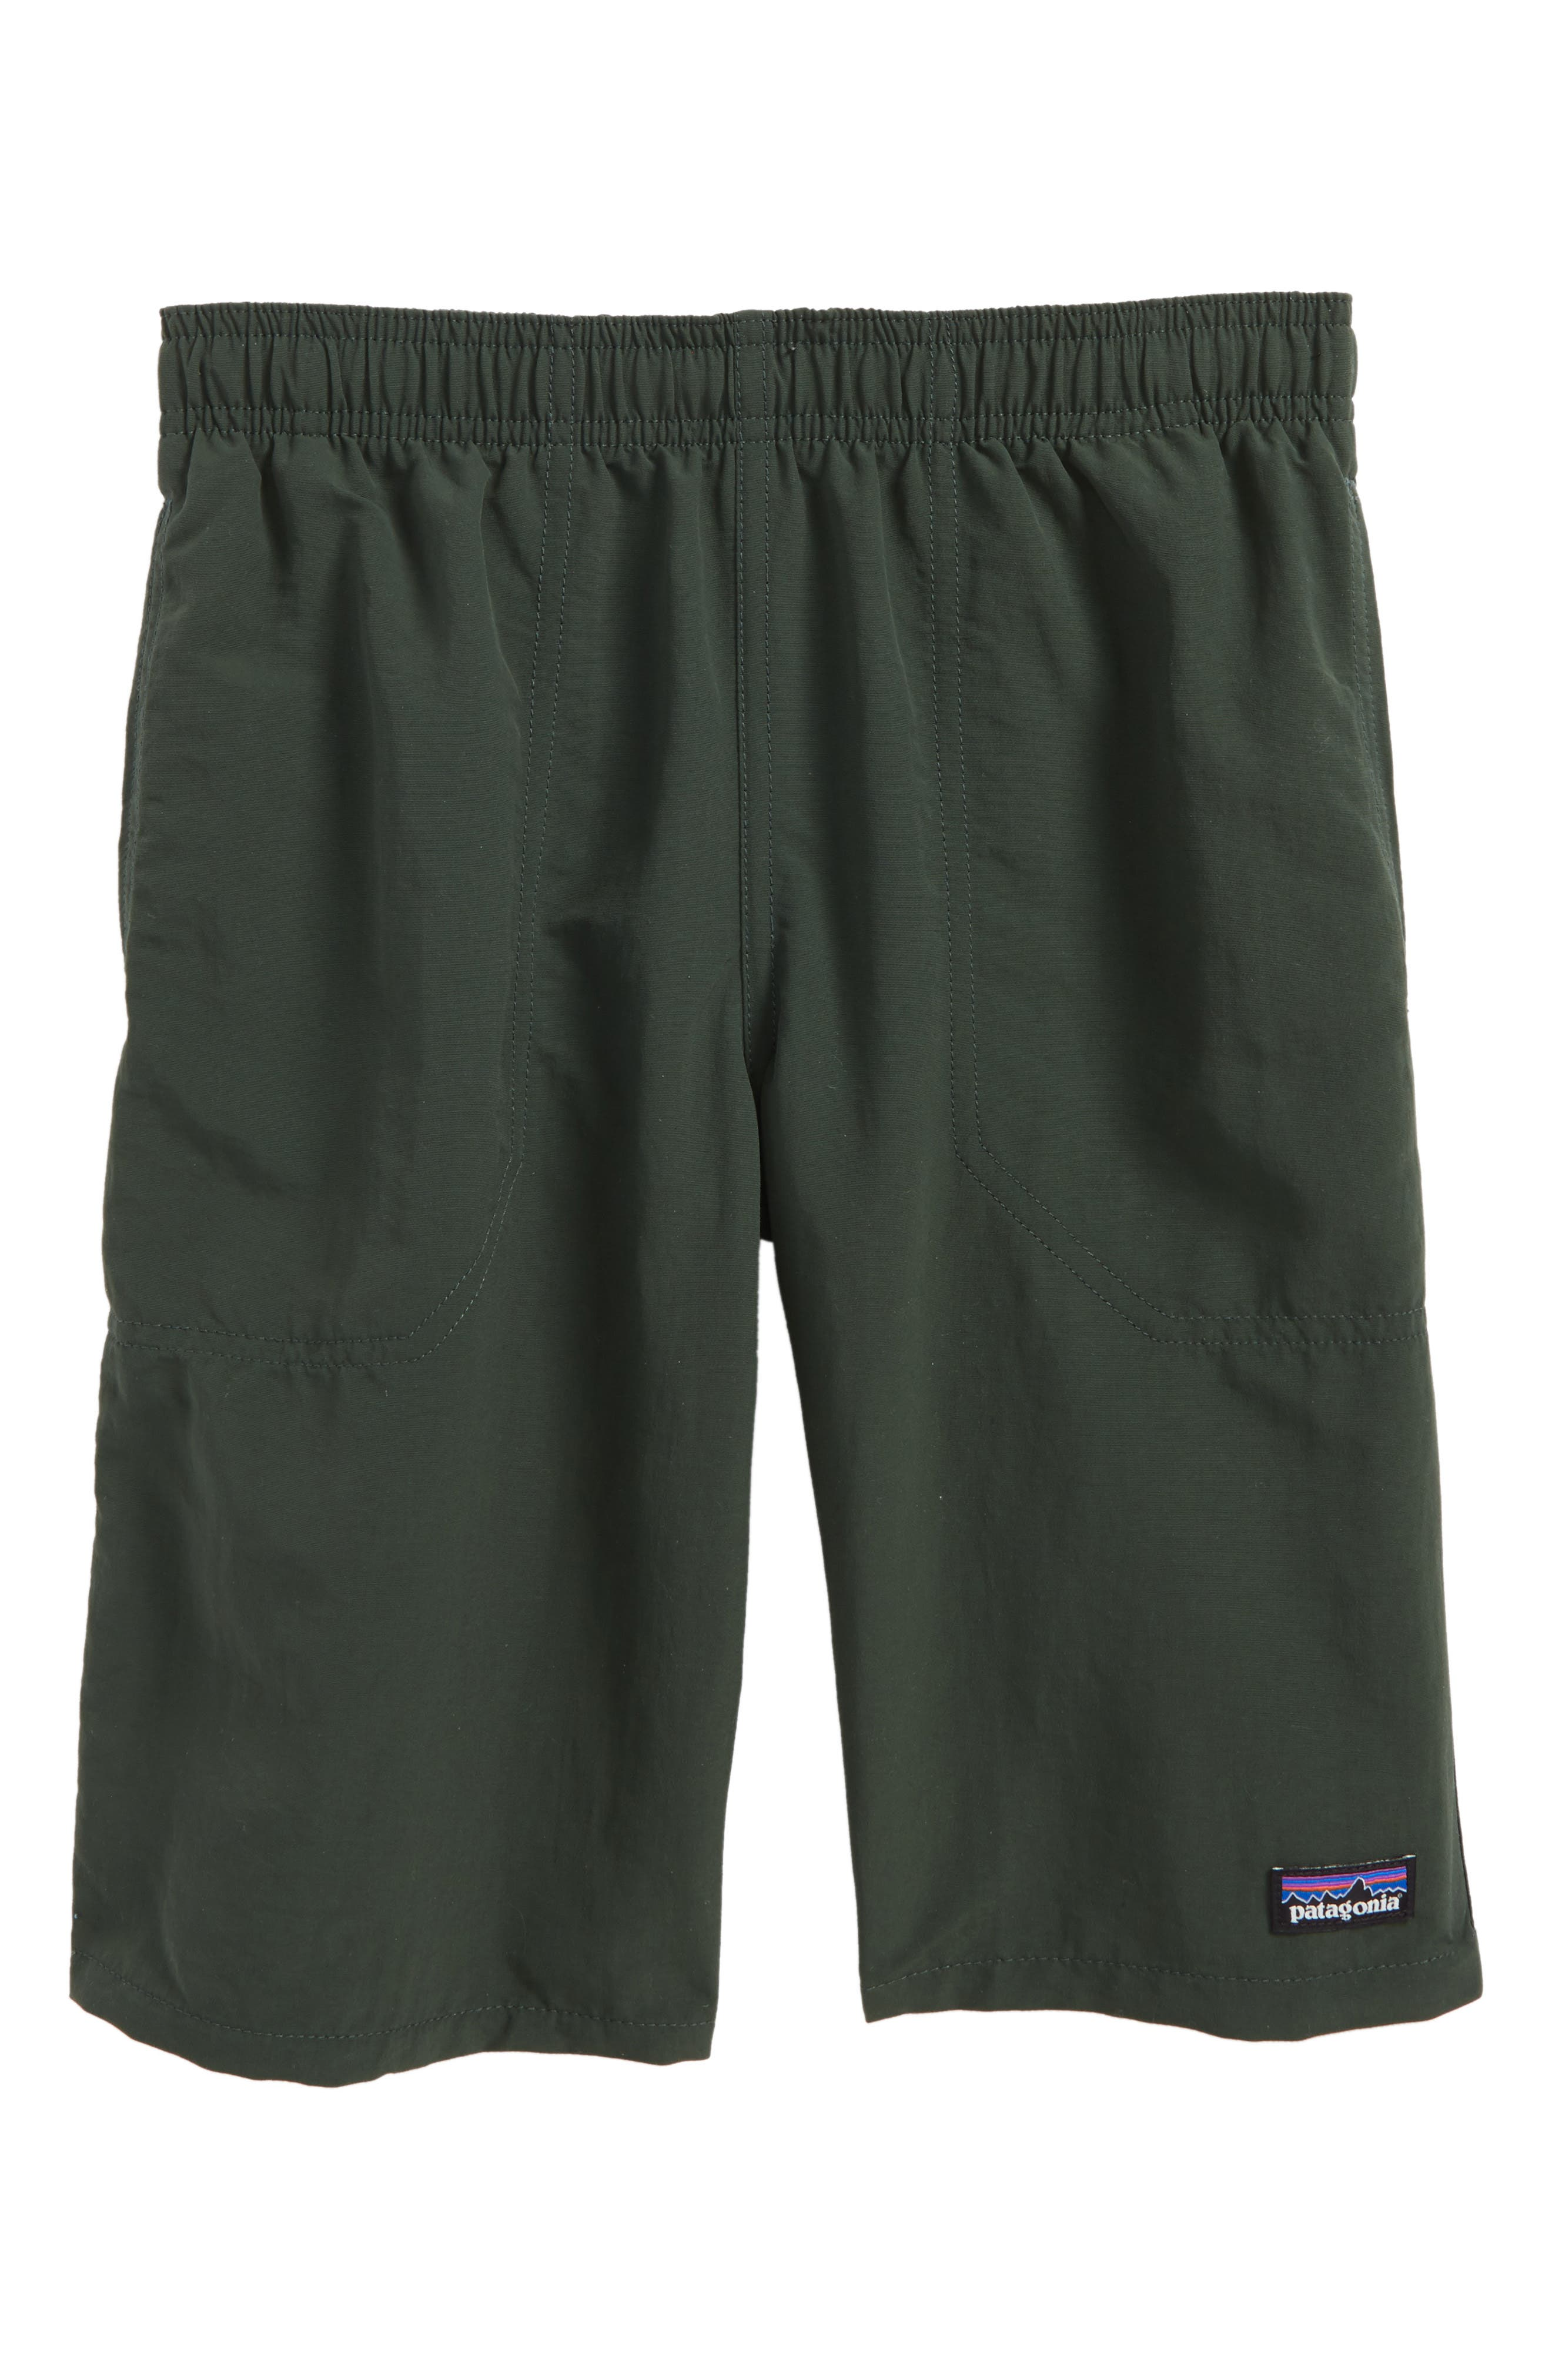 Patagonia Baggies Swim Trunks (Big Boys)